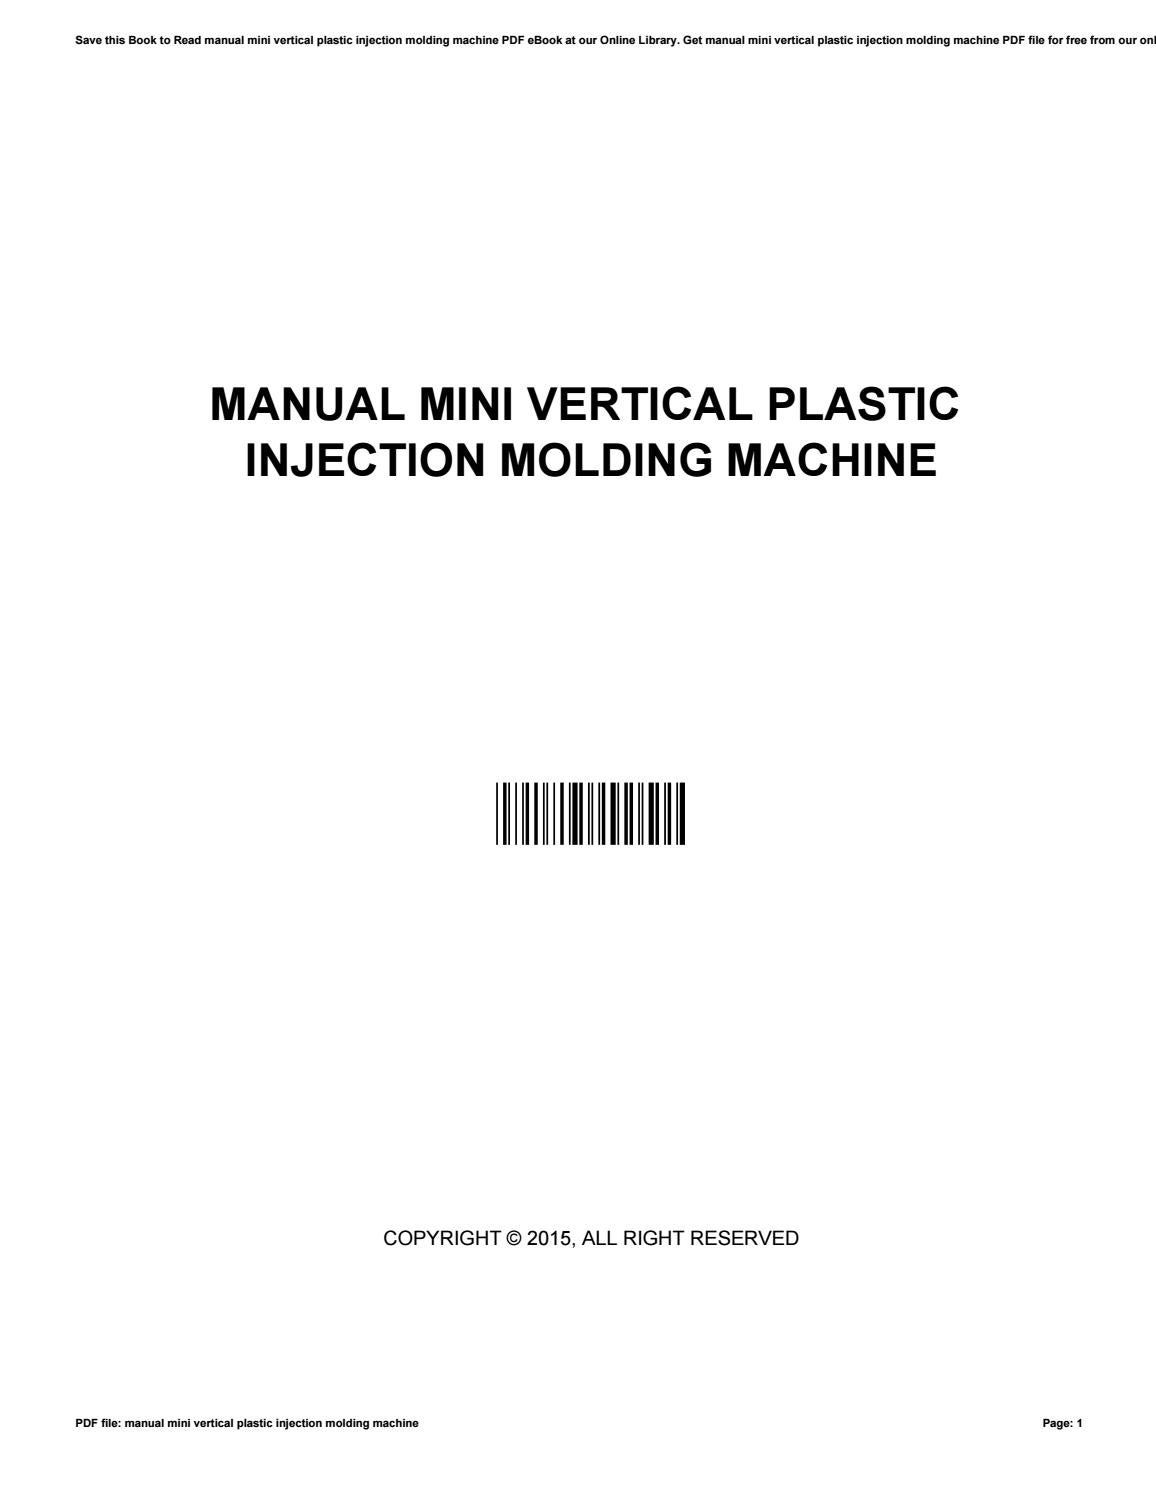 Manual mini vertical plastic injection molding machine by